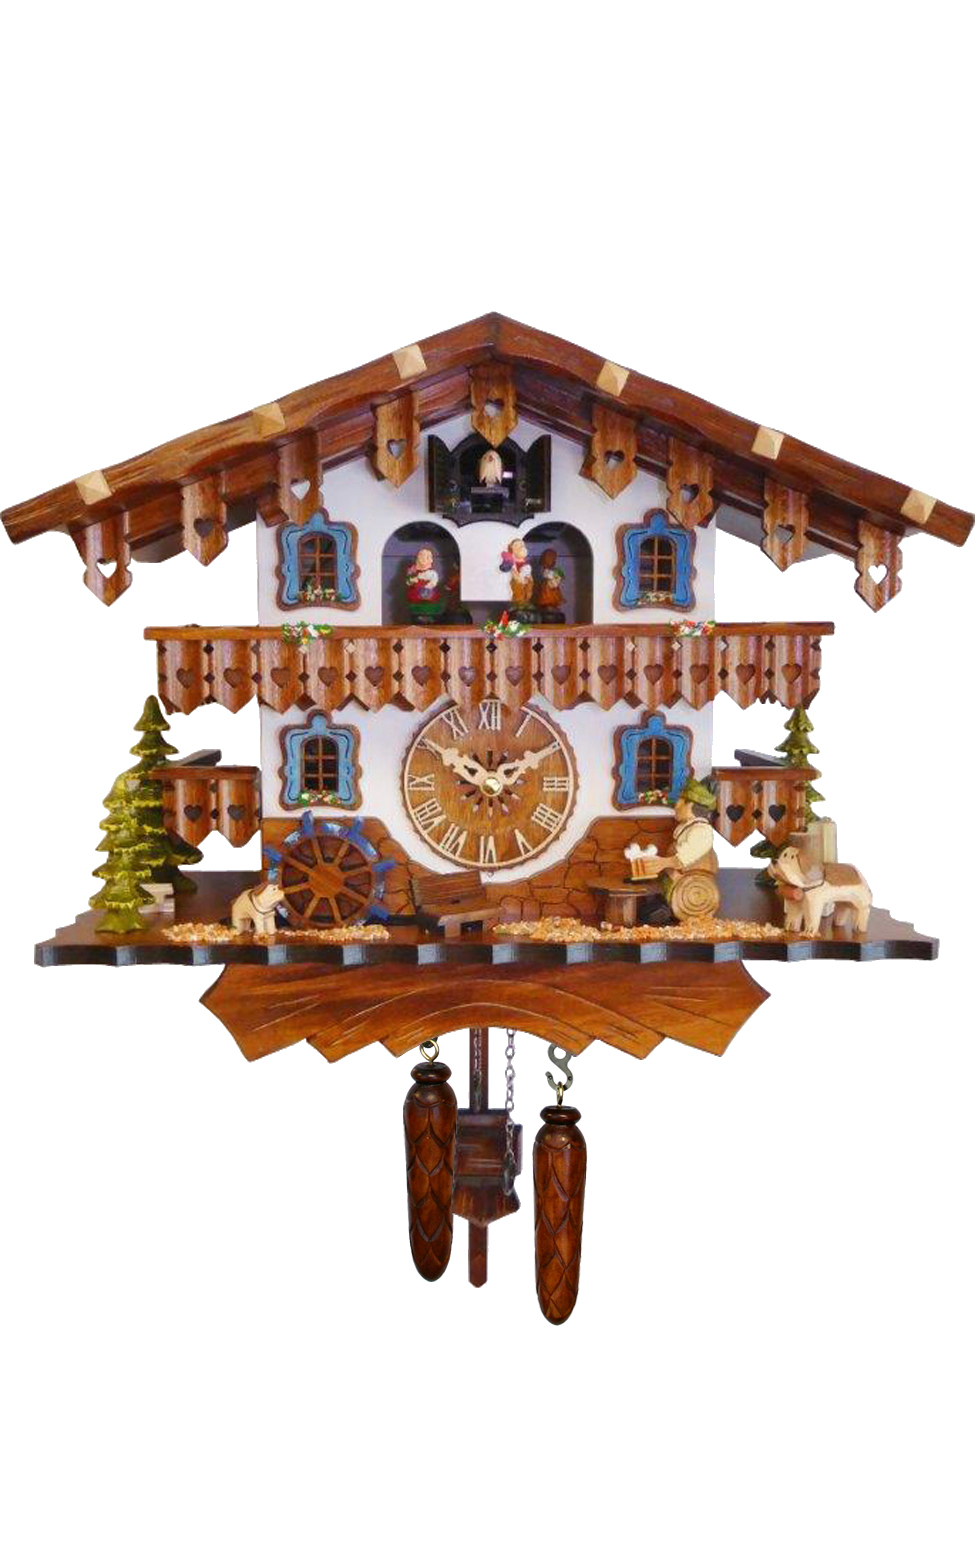 447QMT Swiss Style Chalet with Beer Drinker - Quartz